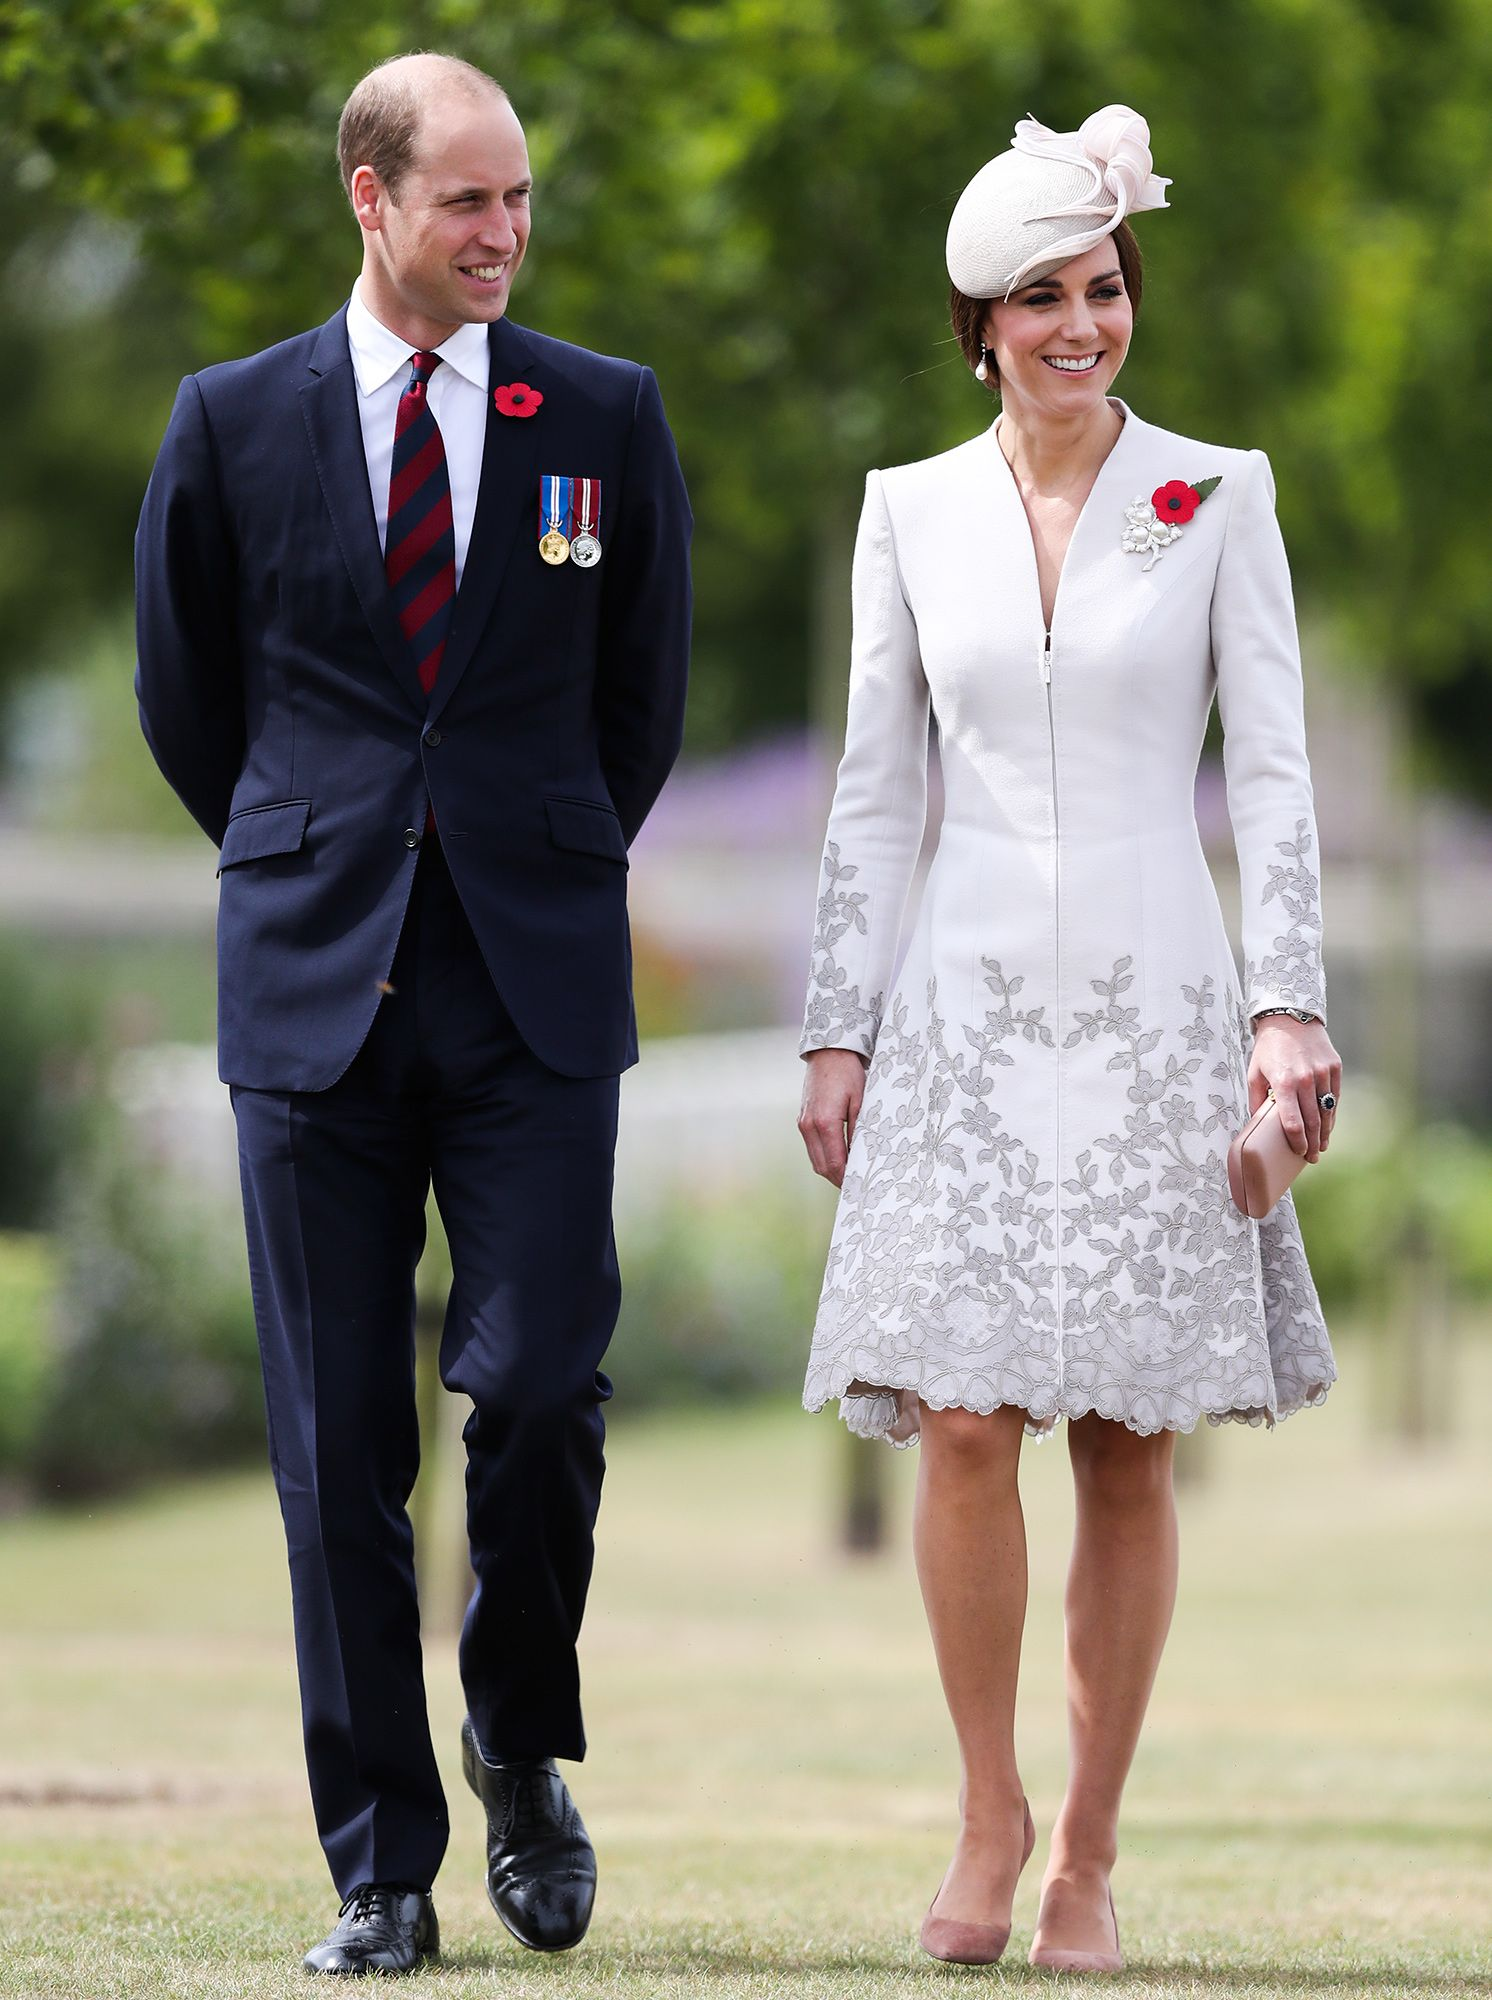 Prince William, Duke of Cambridge and Catherine, Duchess of Cambridge attend the commemorations at the Tyne Cot Commonwealth War Graves Cemetery on July 31, 2017 in Ypres, Belgium. The commemorations mark the centenary of Passchendaele - The Third Battle of Ypres.